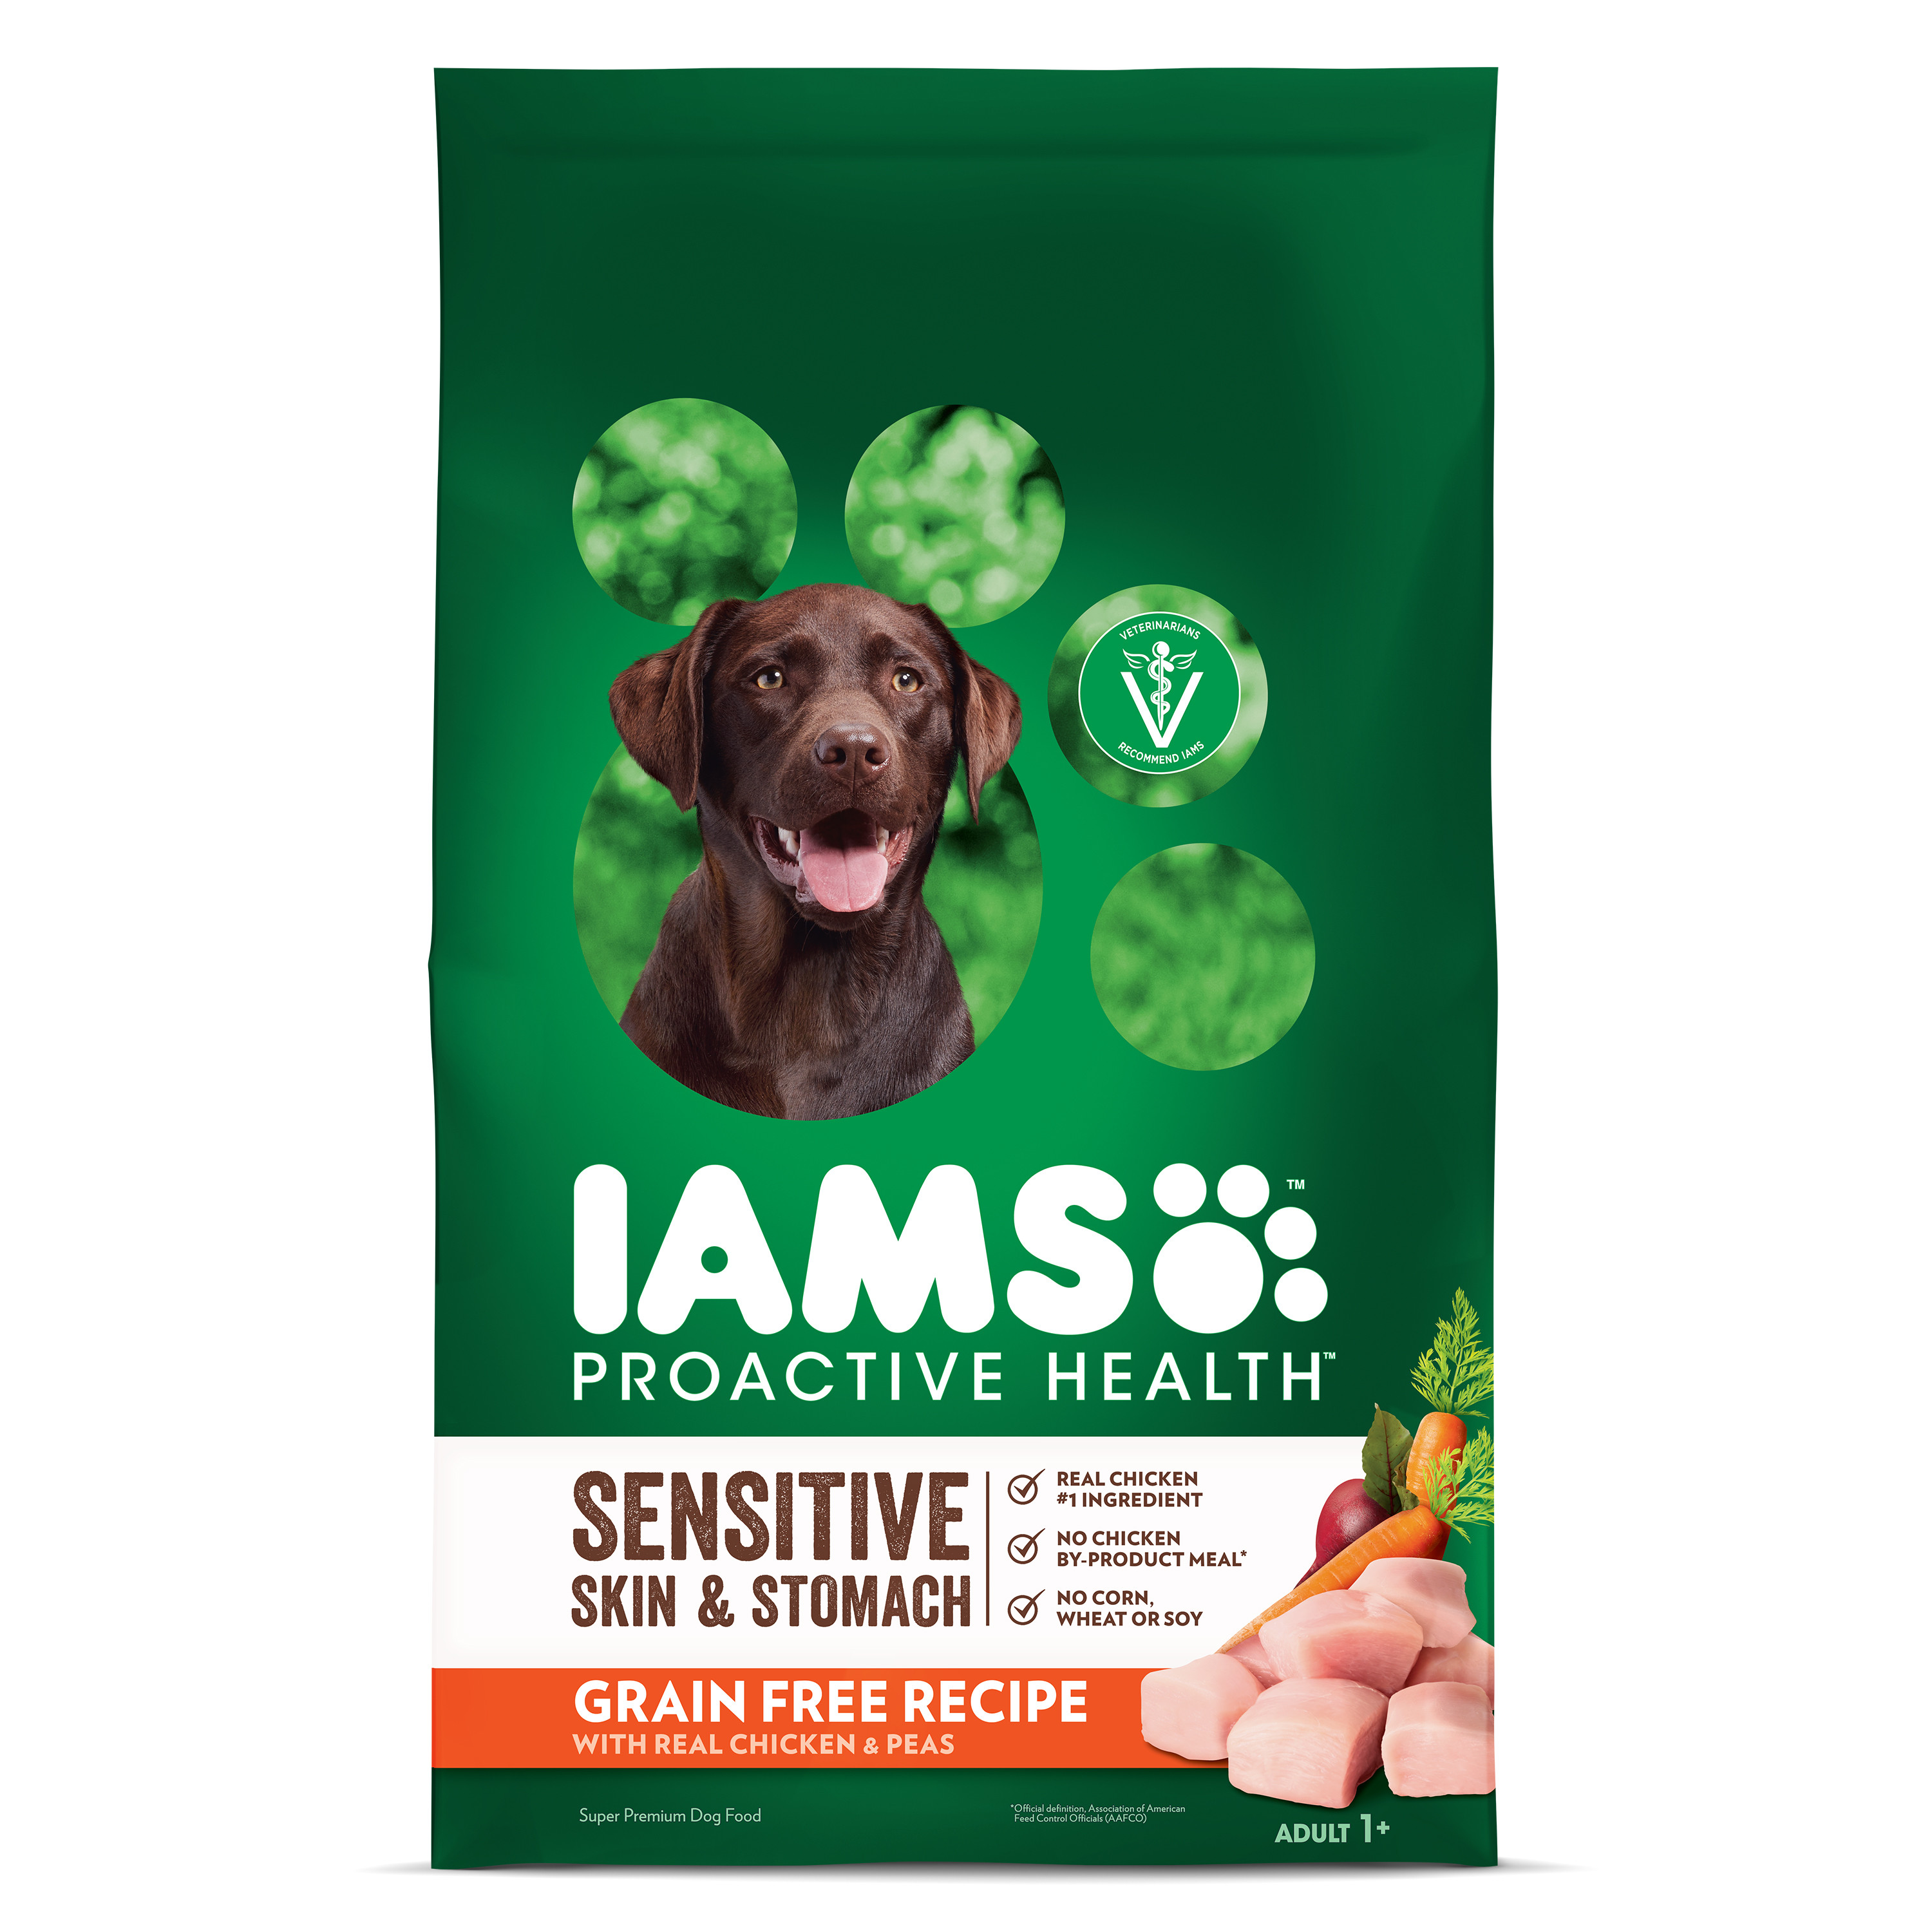 Iams Proactive Health Dry Dog Food, Sensitive Skin And Stomach Grain-Free With Real Chicken And Peas, 10.3 Lb